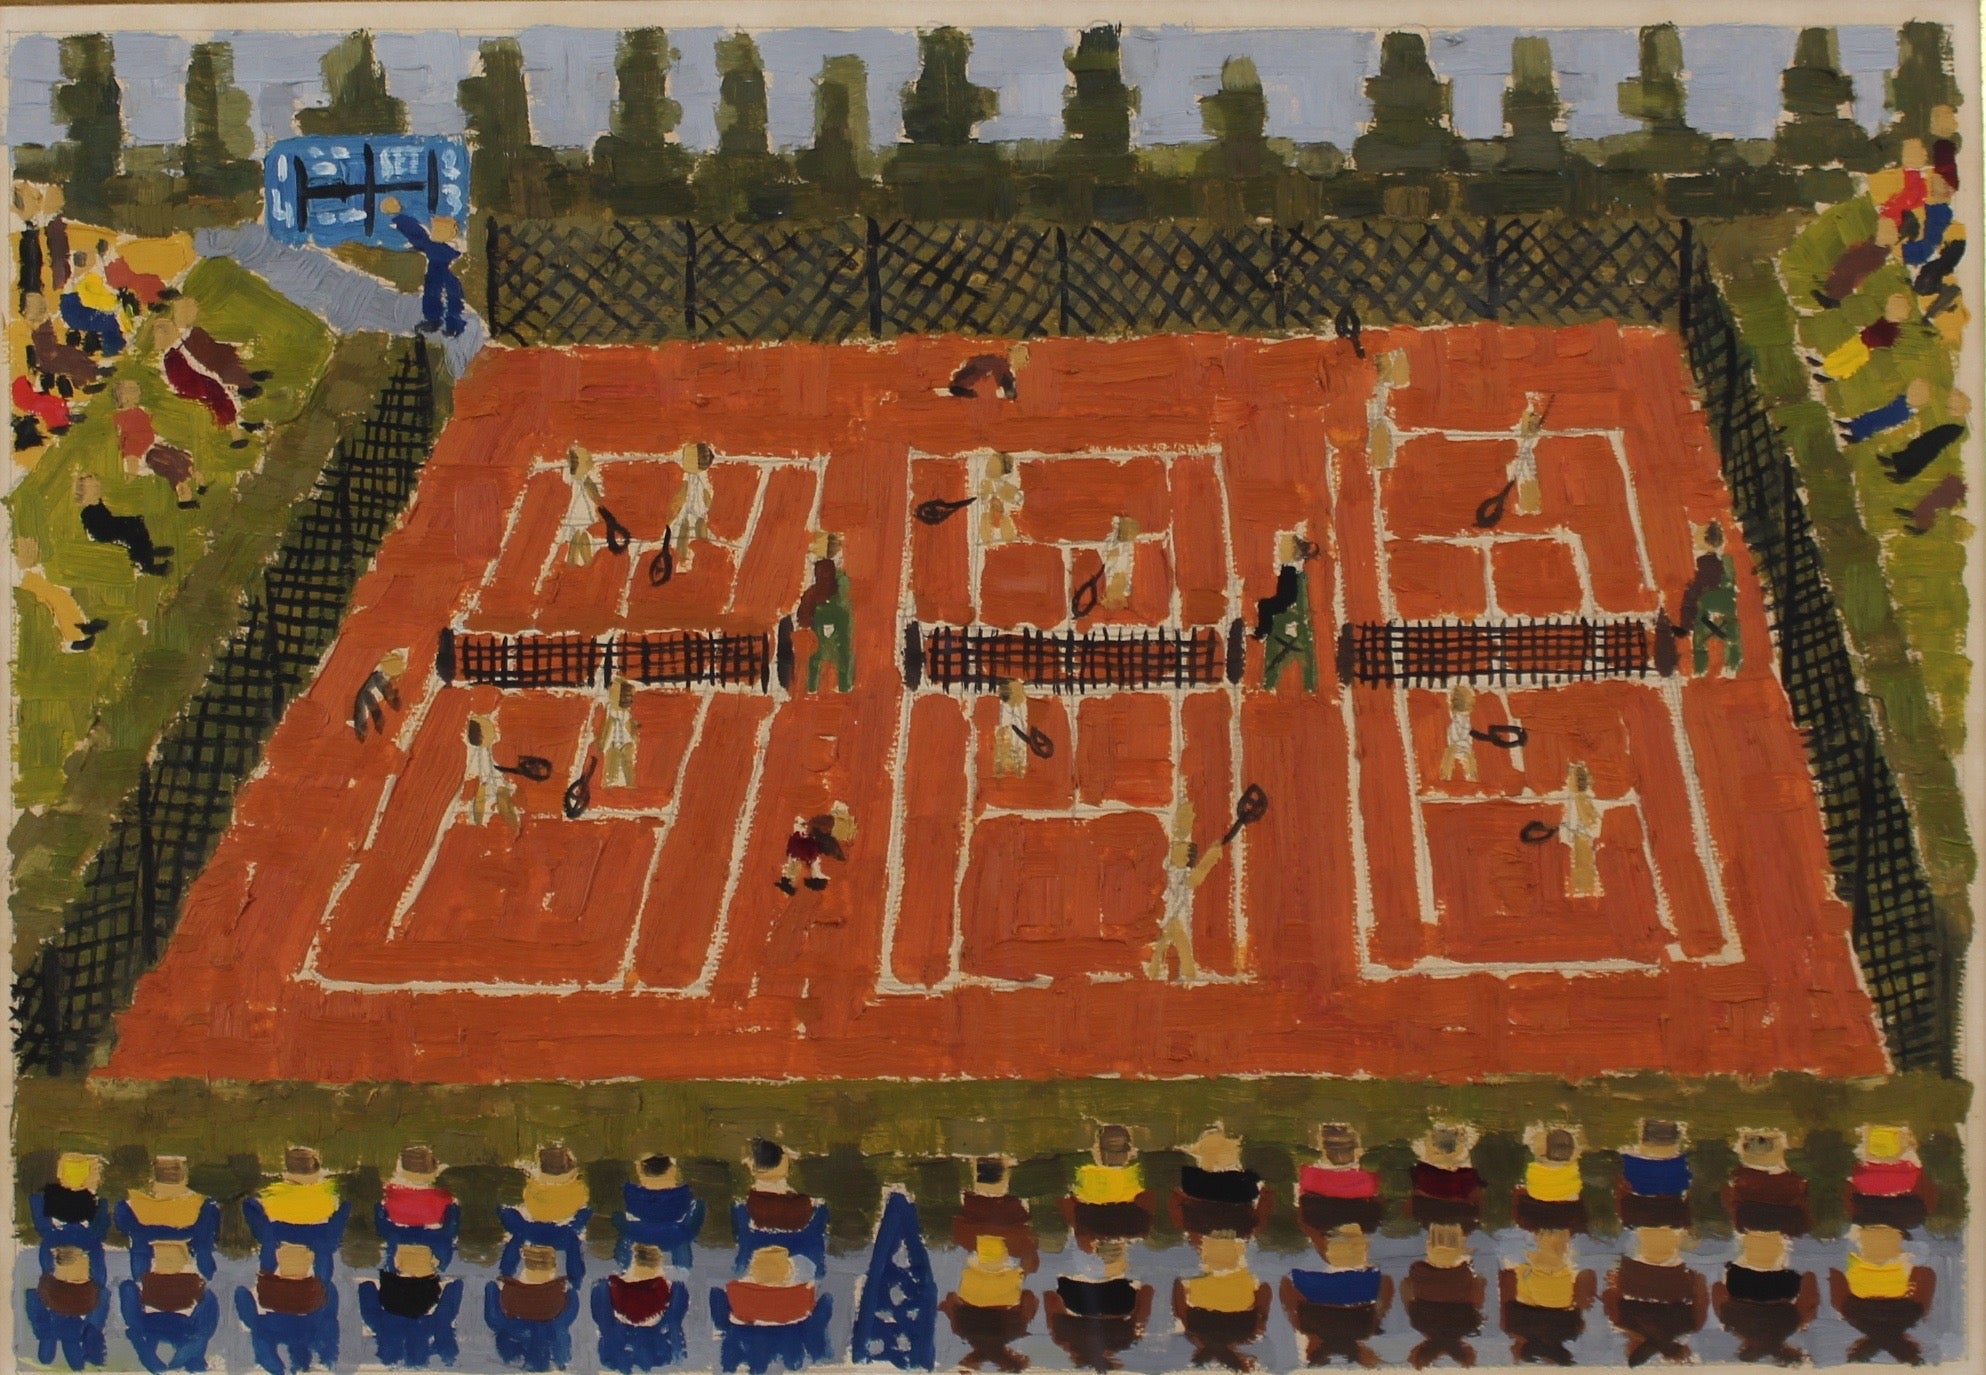 'Monte Carlo Clay Court Tennis Tournament' by Claud Ambaud (c. 1960s)